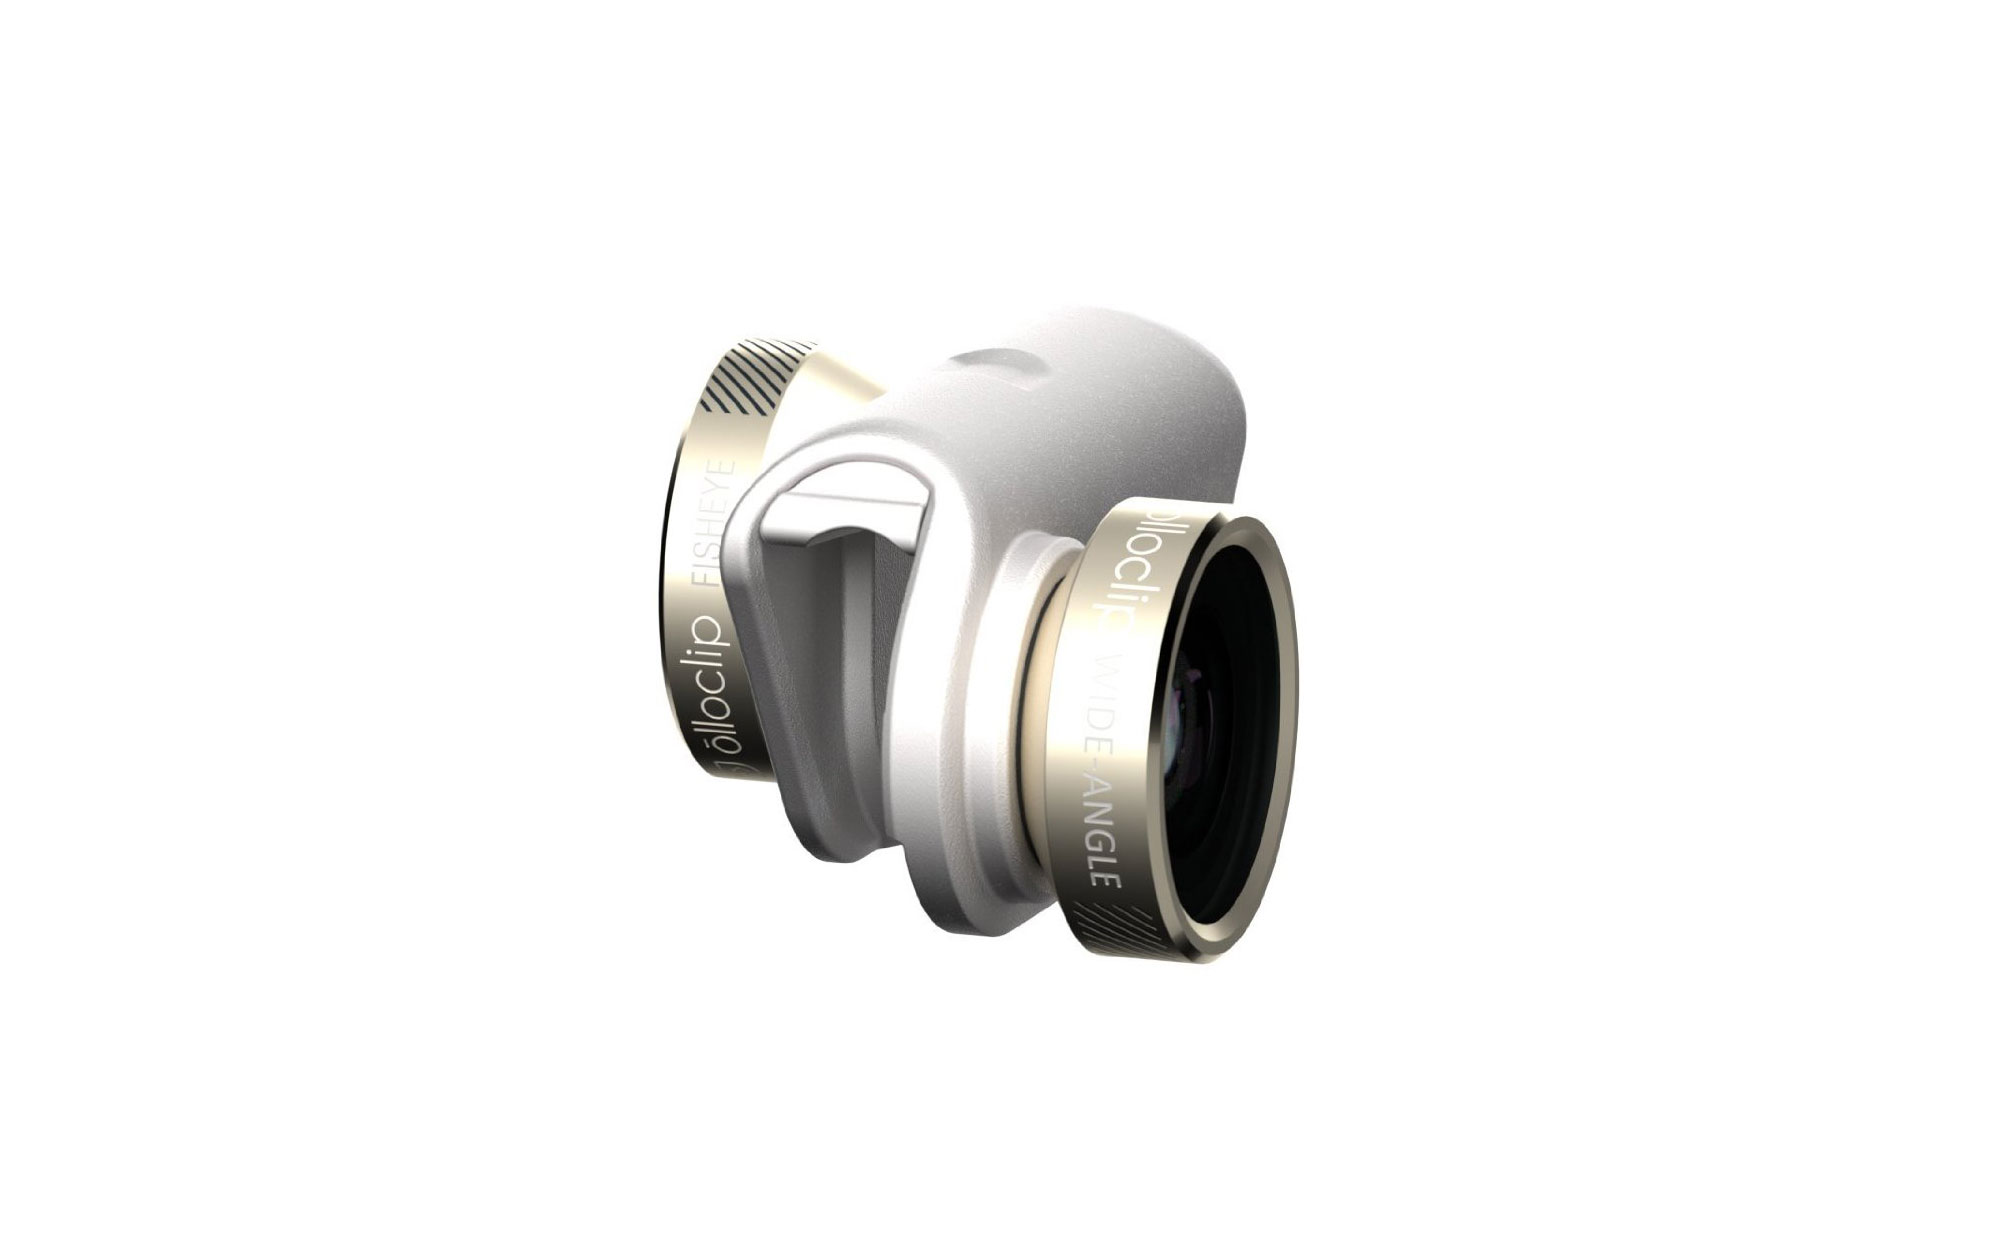 Best Travel Products: Olloclip 4-IN-1 Lens for iPhone